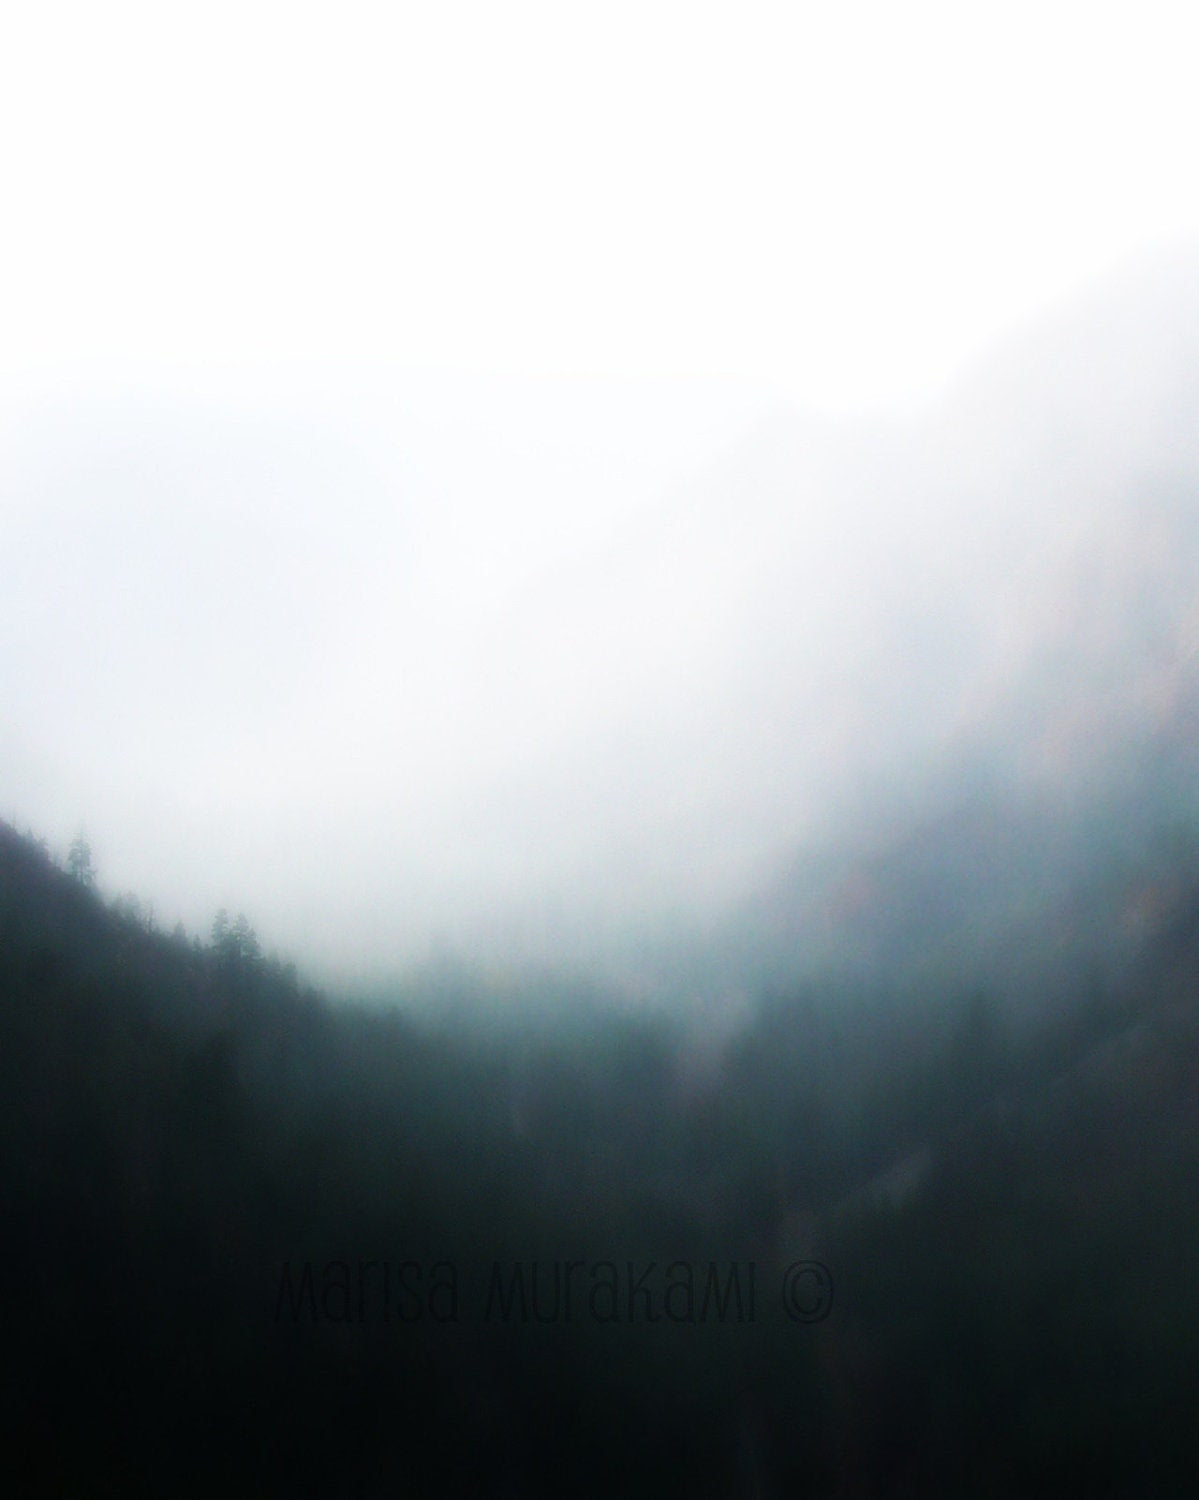 Dream like / Fog / Nature / Abstract / Forest / Soft / Gray / Dark Green - sukoshishop